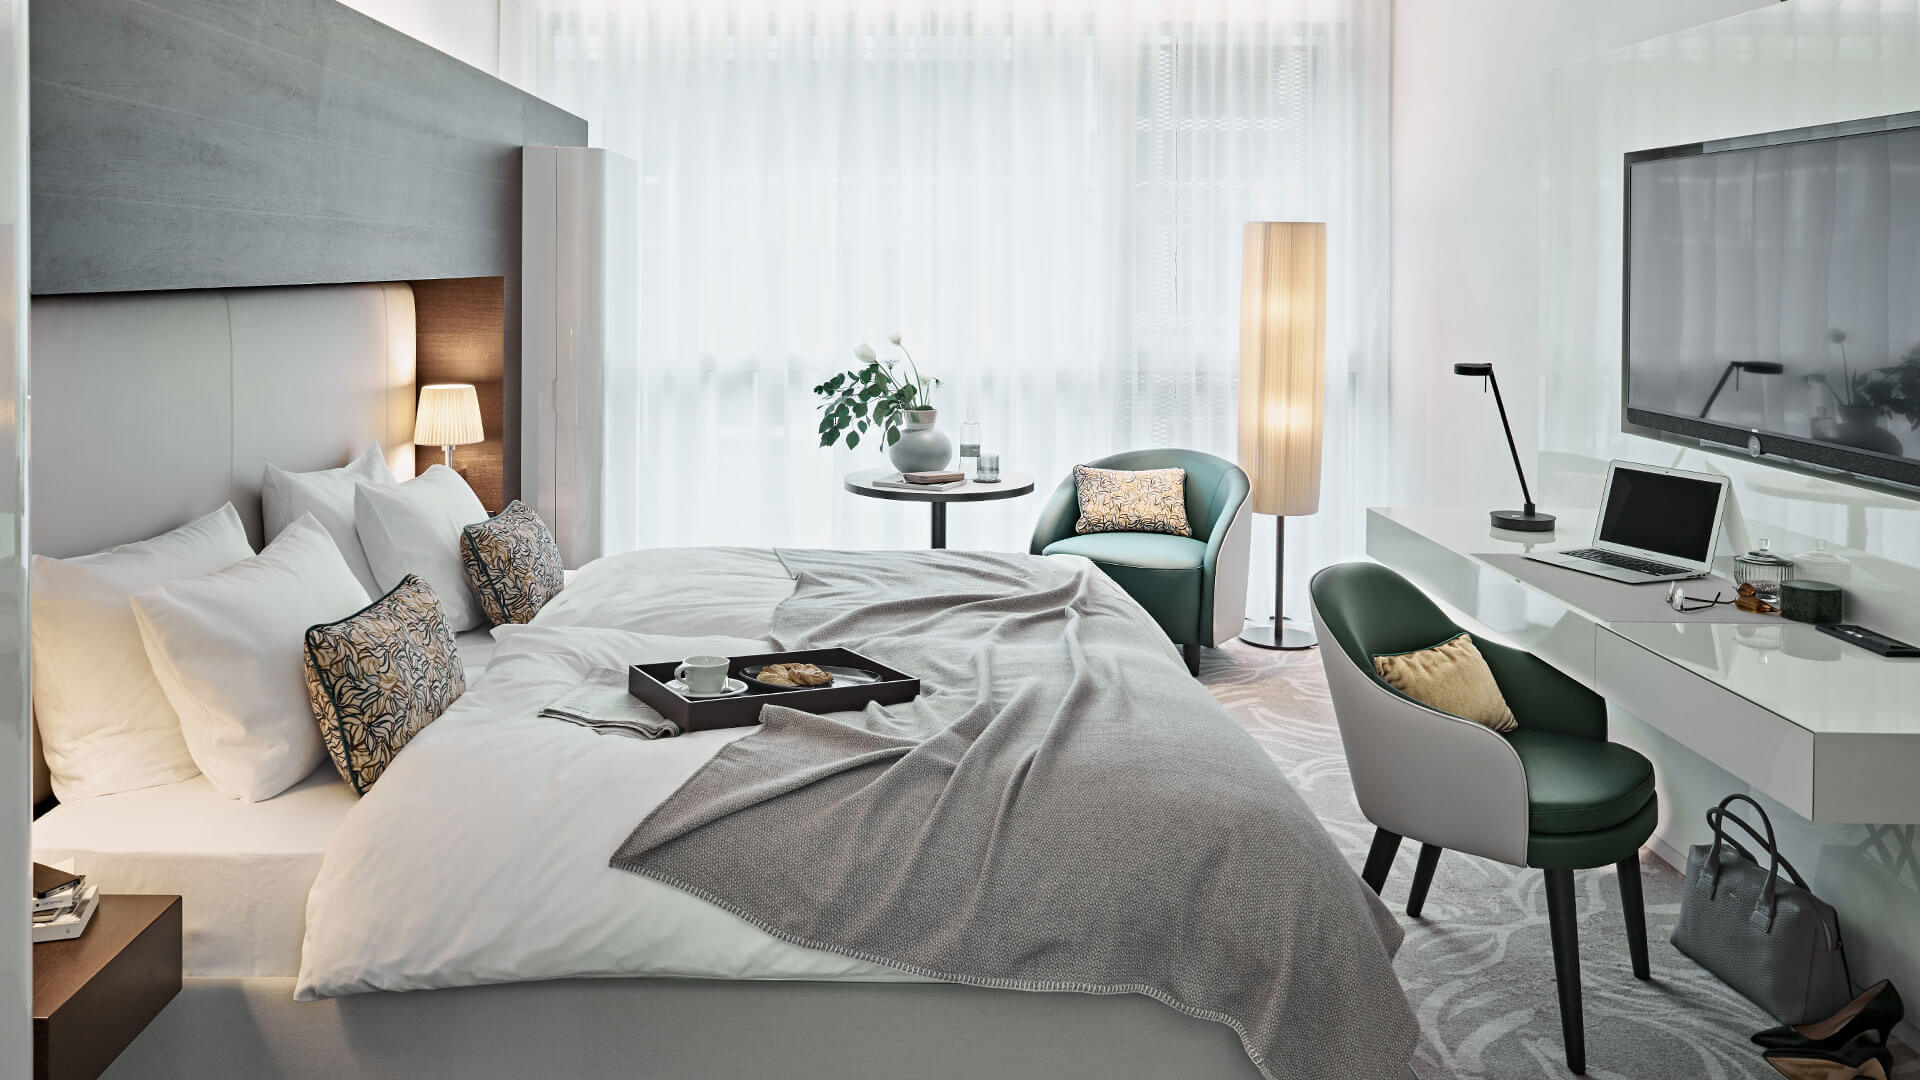 buchen sie hier ihr lieblings zimmer im side design hotel. Black Bedroom Furniture Sets. Home Design Ideas